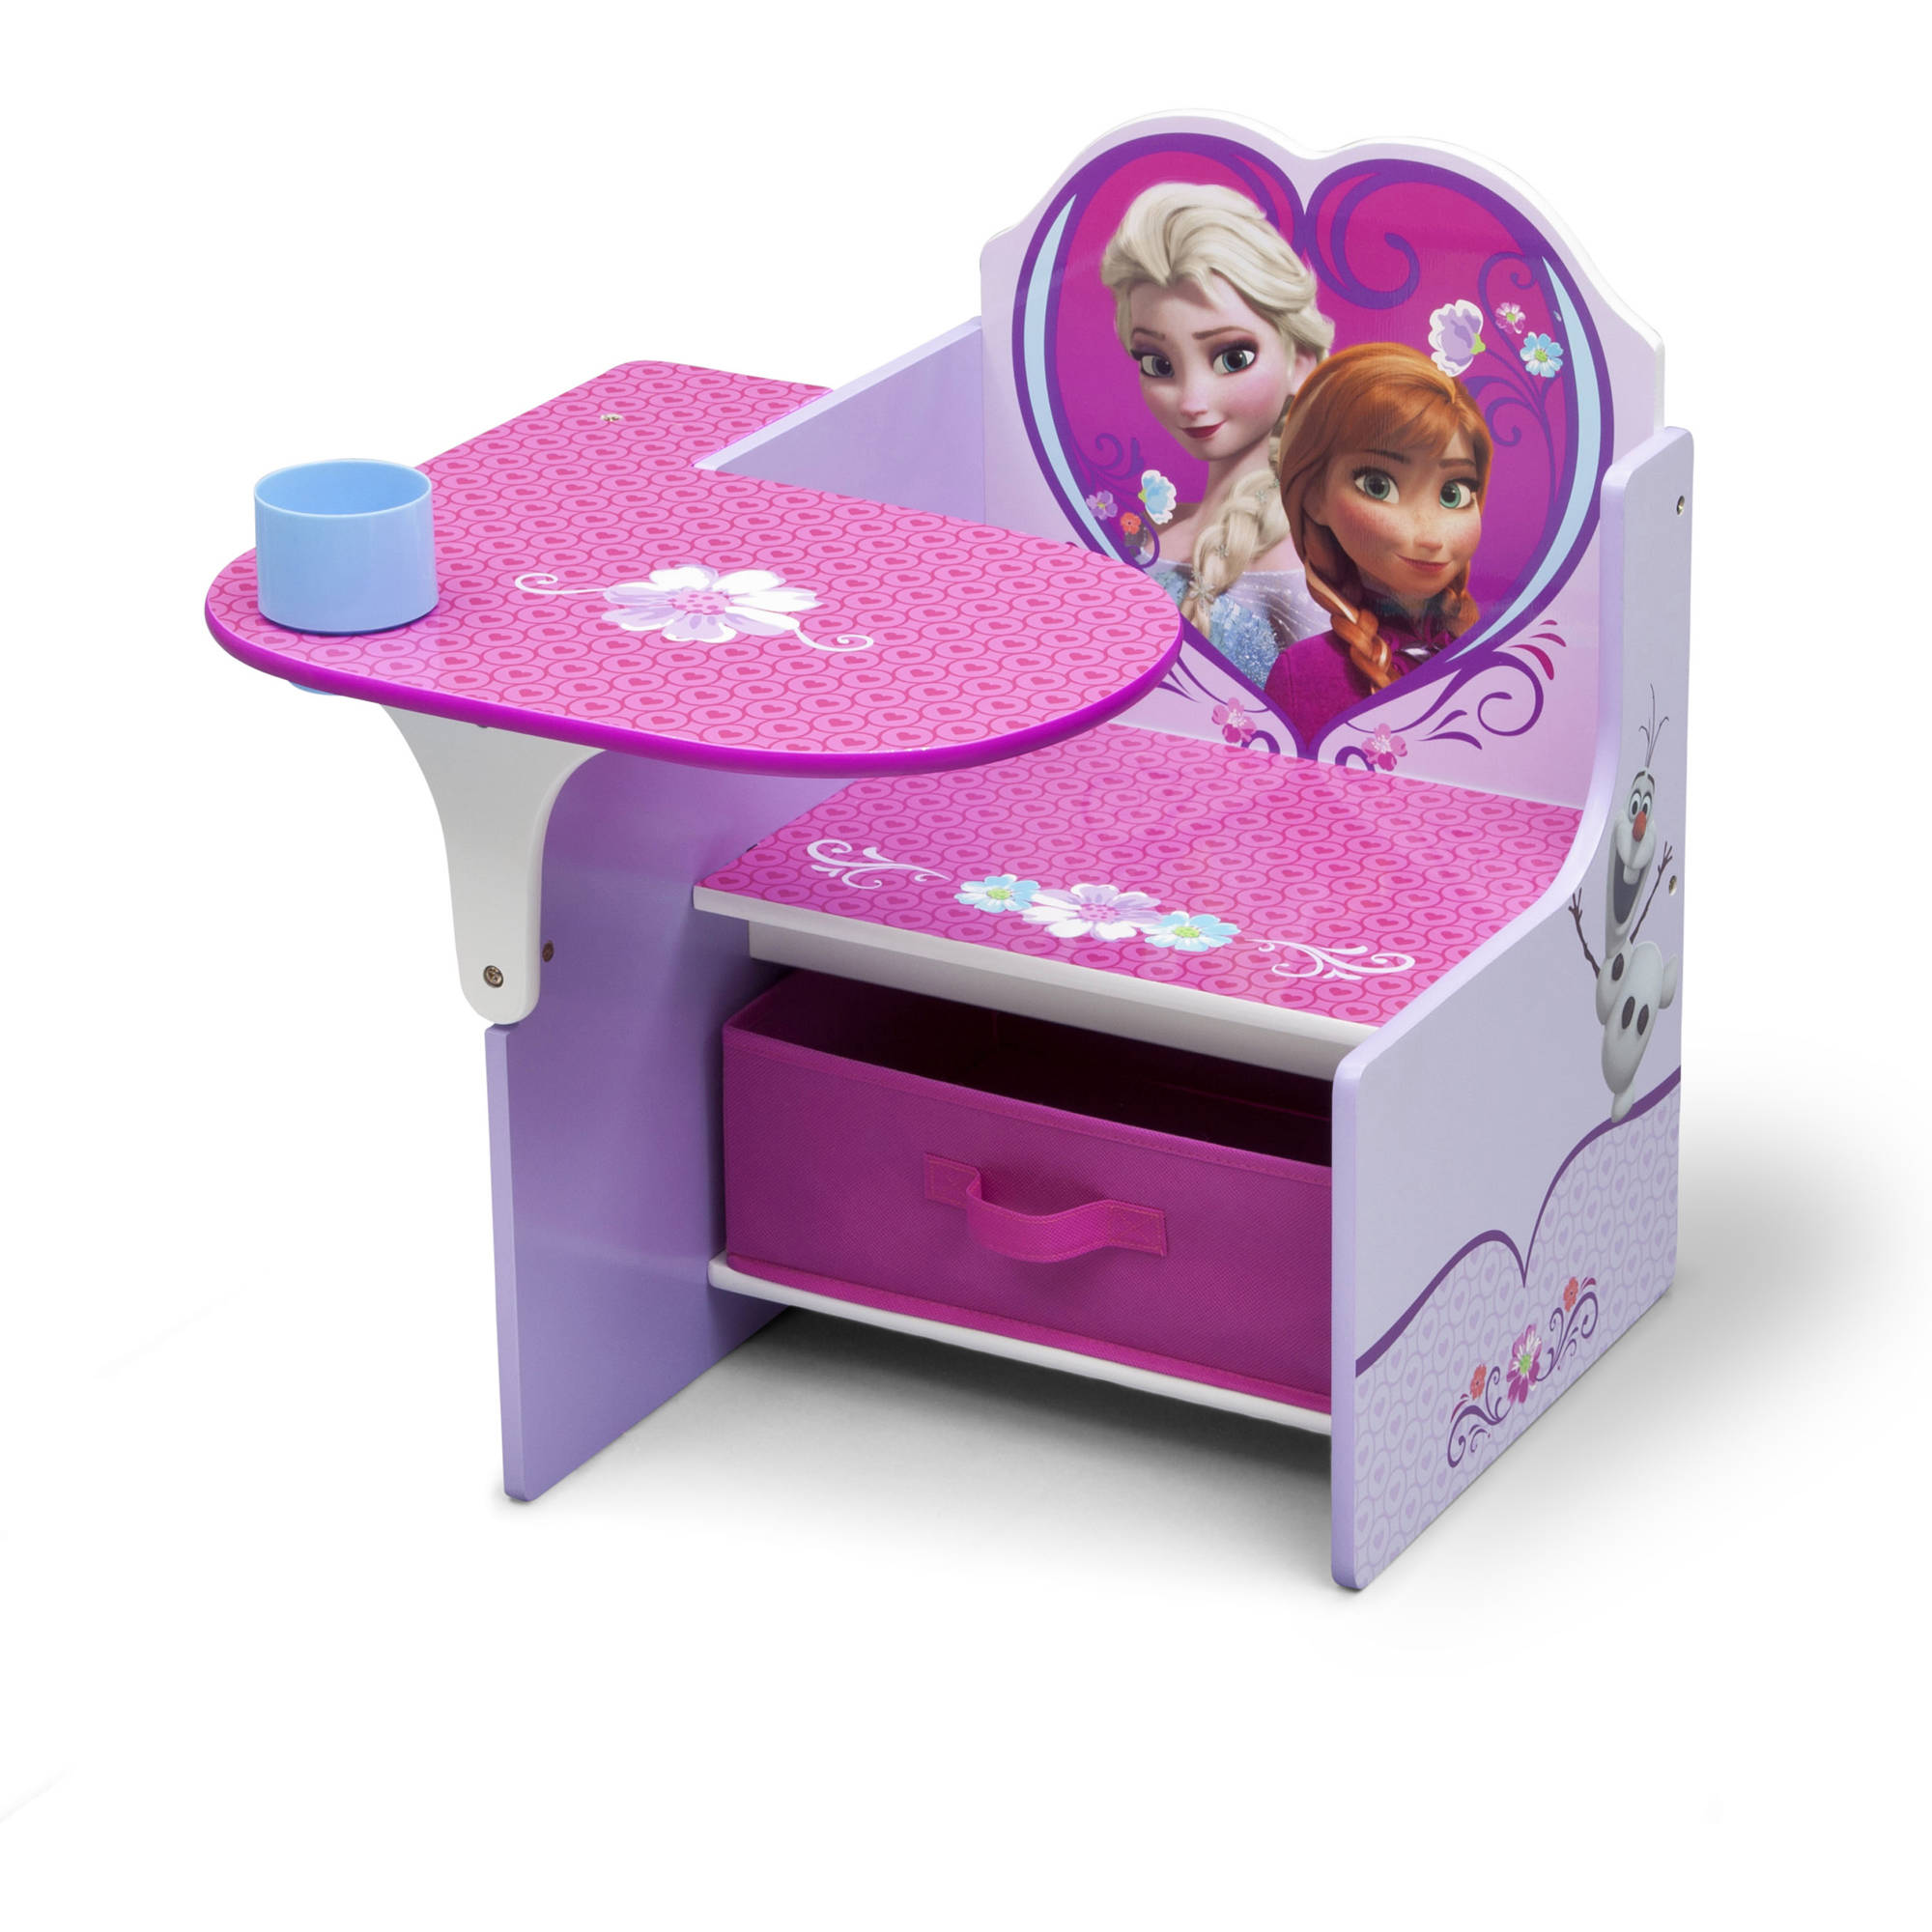 Disney Frozen, Toddler Child Chair Desk With Bonus Storage Bin By Delta  Children   Walmart.com